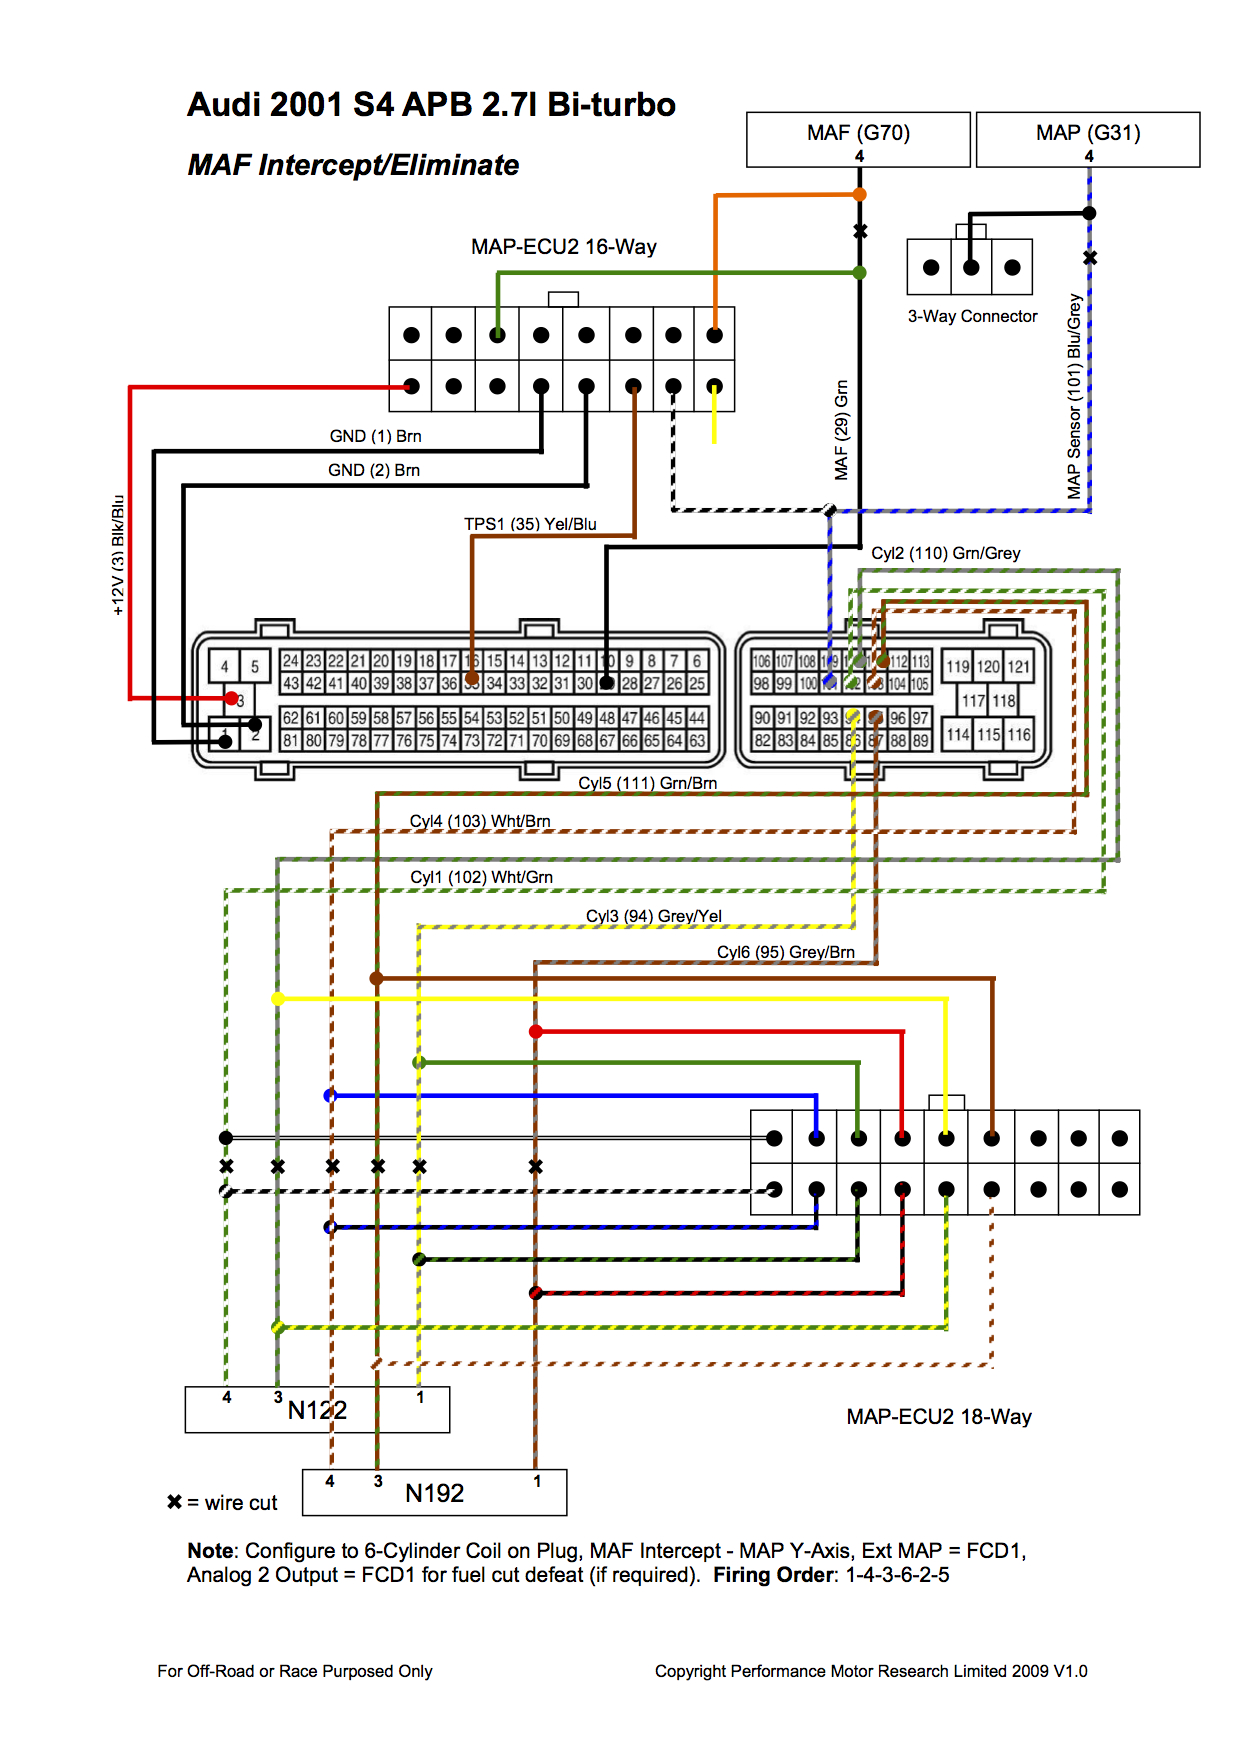 Audi S4 20011 mapecu wiring diagrams audi, bmw, ford, honda, lexus, nissan, toyota 1996 toyota tacoma wiring diagram at bayanpartner.co